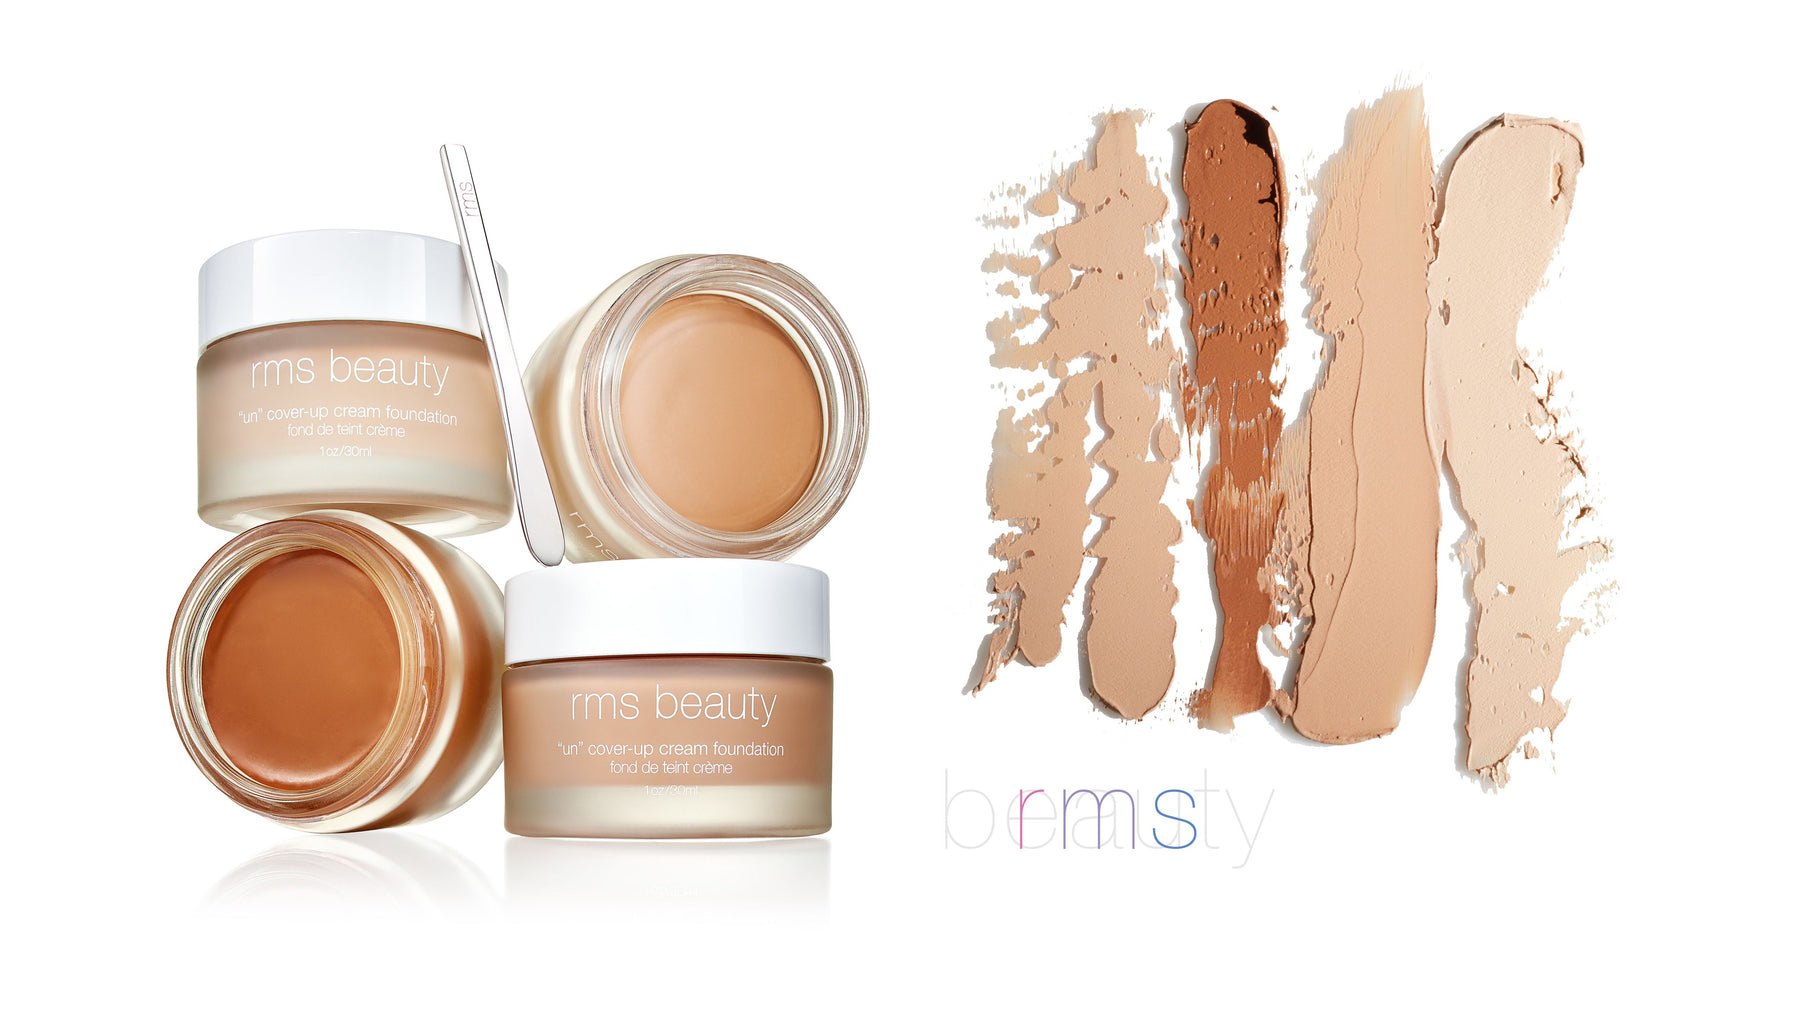 A selection of rms beauty